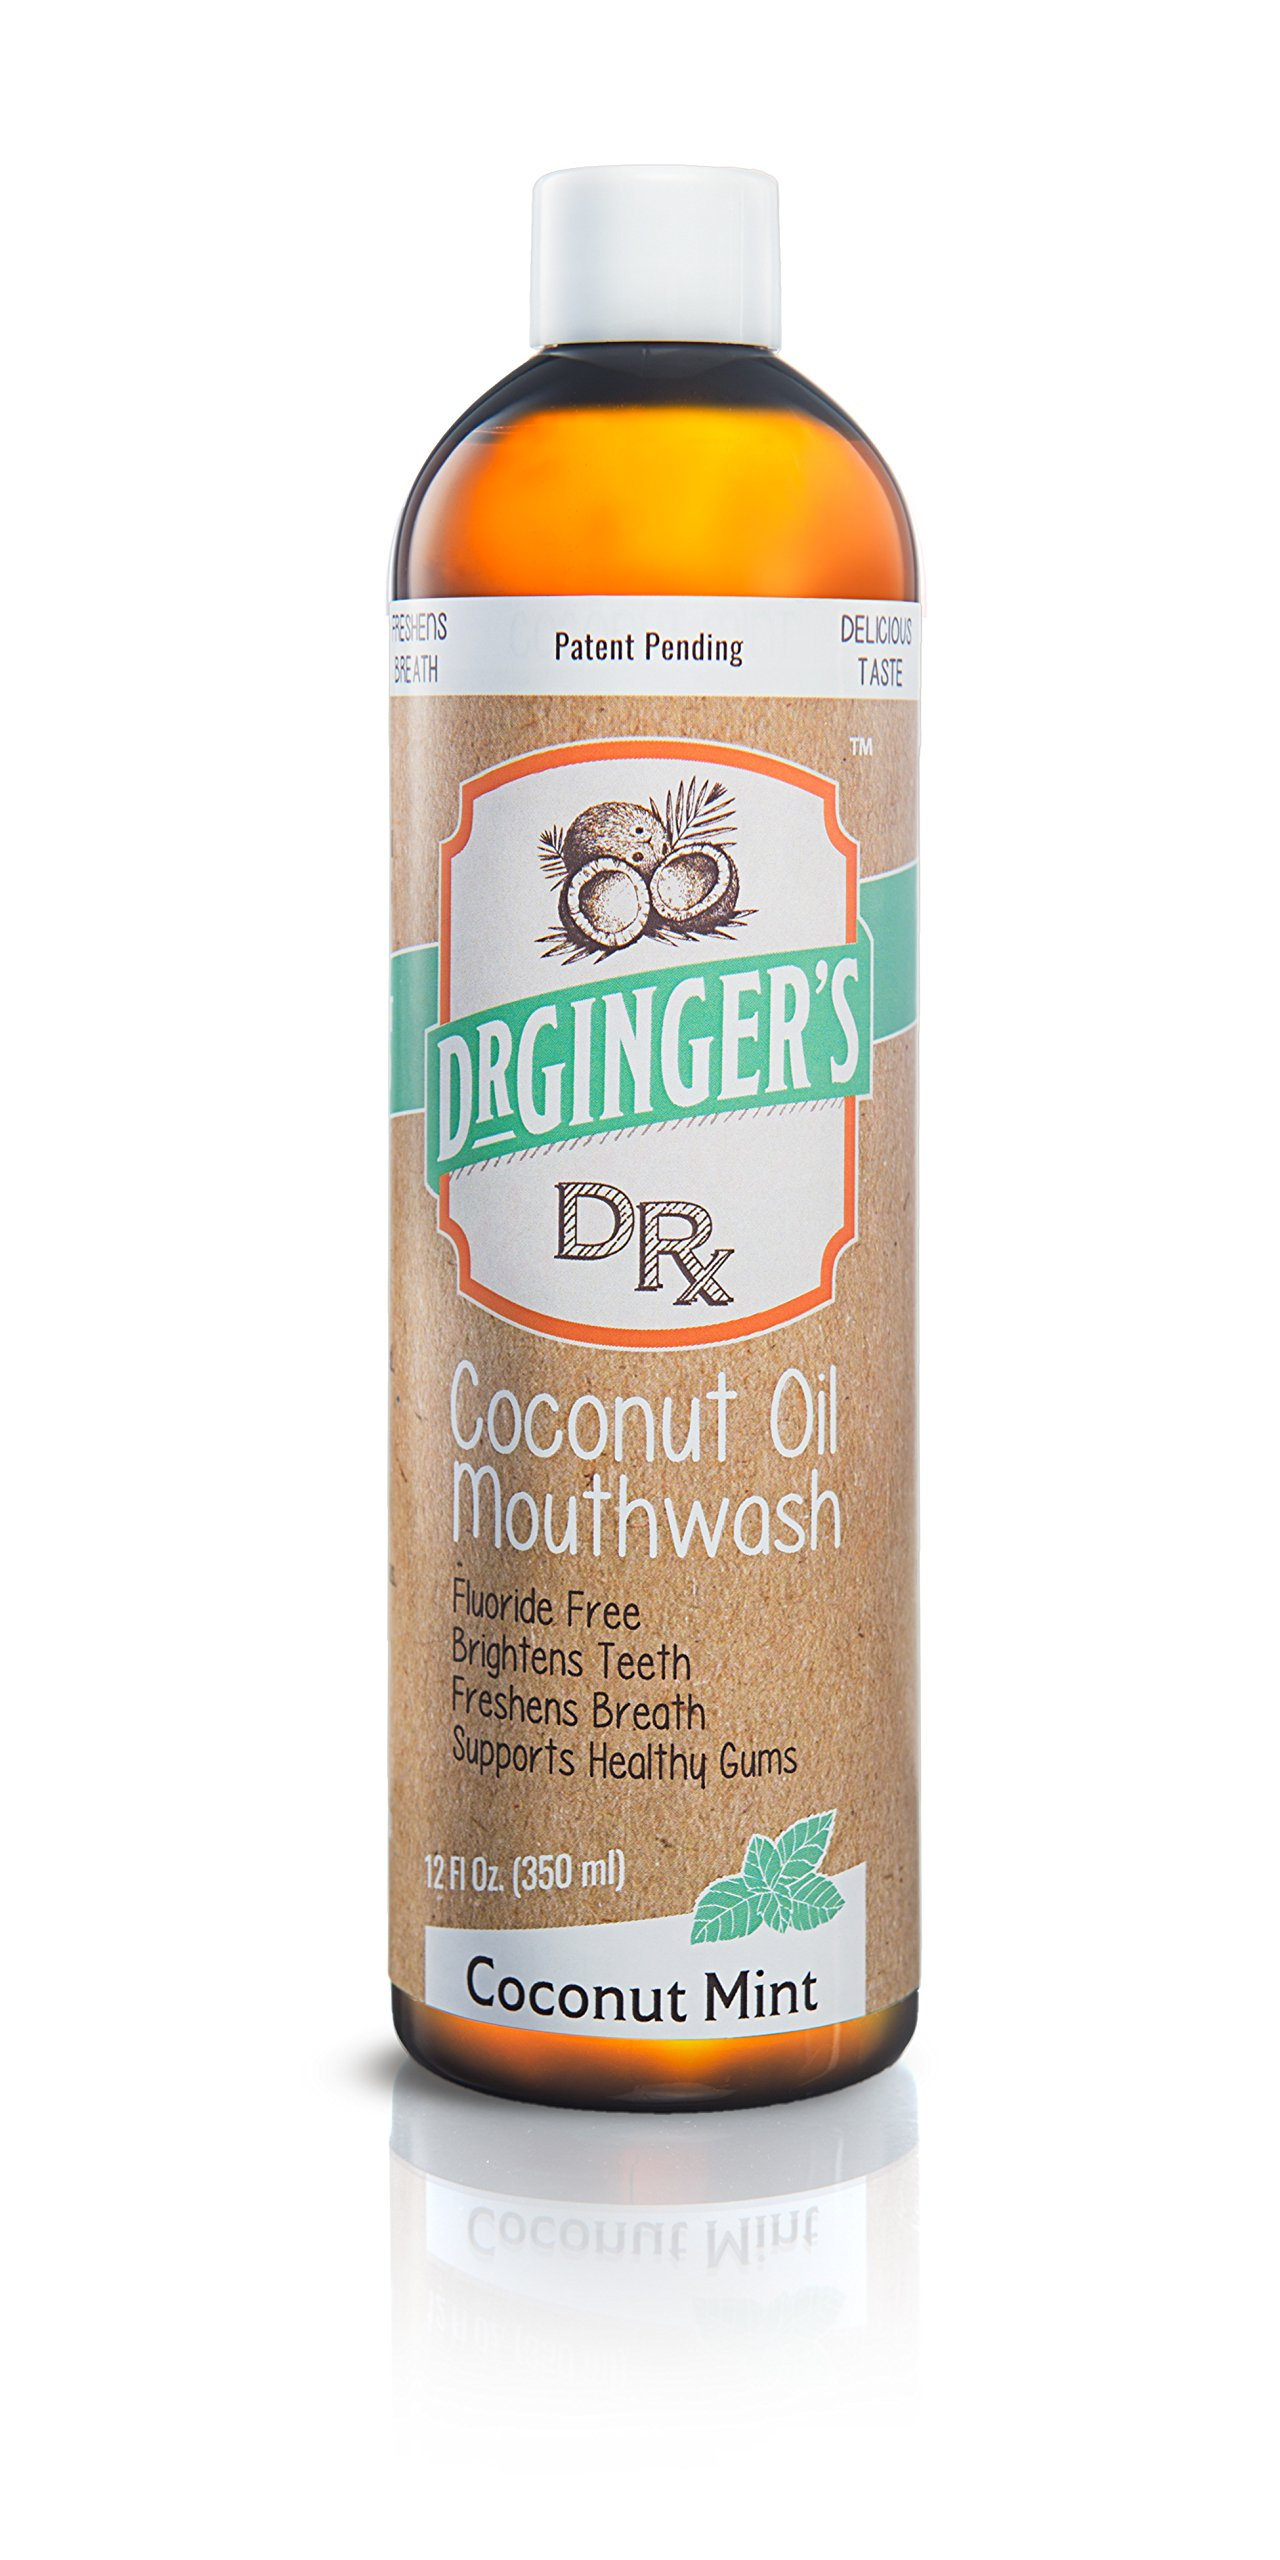 Dr Gingers Coconut Oil Pulling & Whitening Mouthwash, Coconut Mint, 12 oz